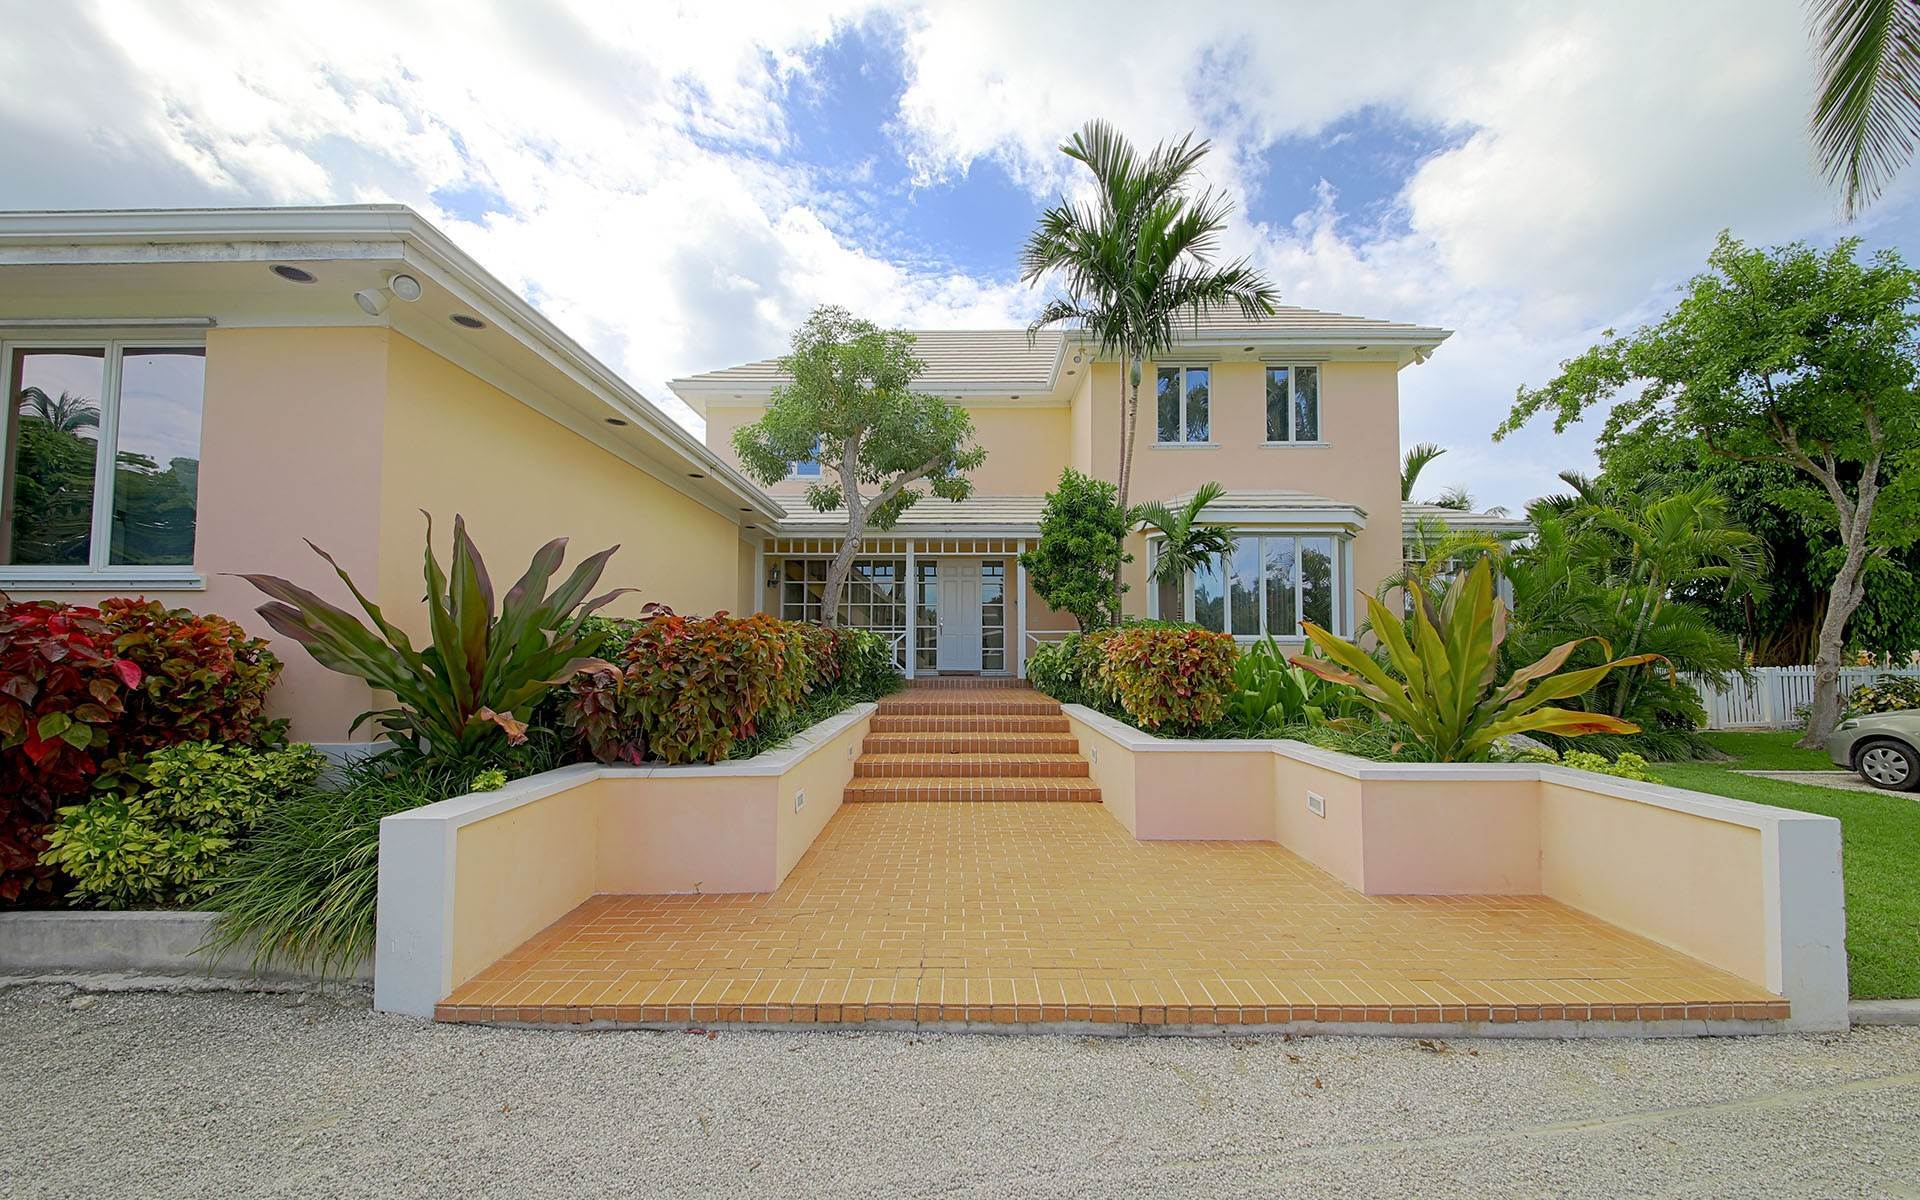 Single Family Homes for Sale at Beautiful Lyford Cay Canalfront Home Lyford Cay, Nassau And Paradise Island, Bahamas